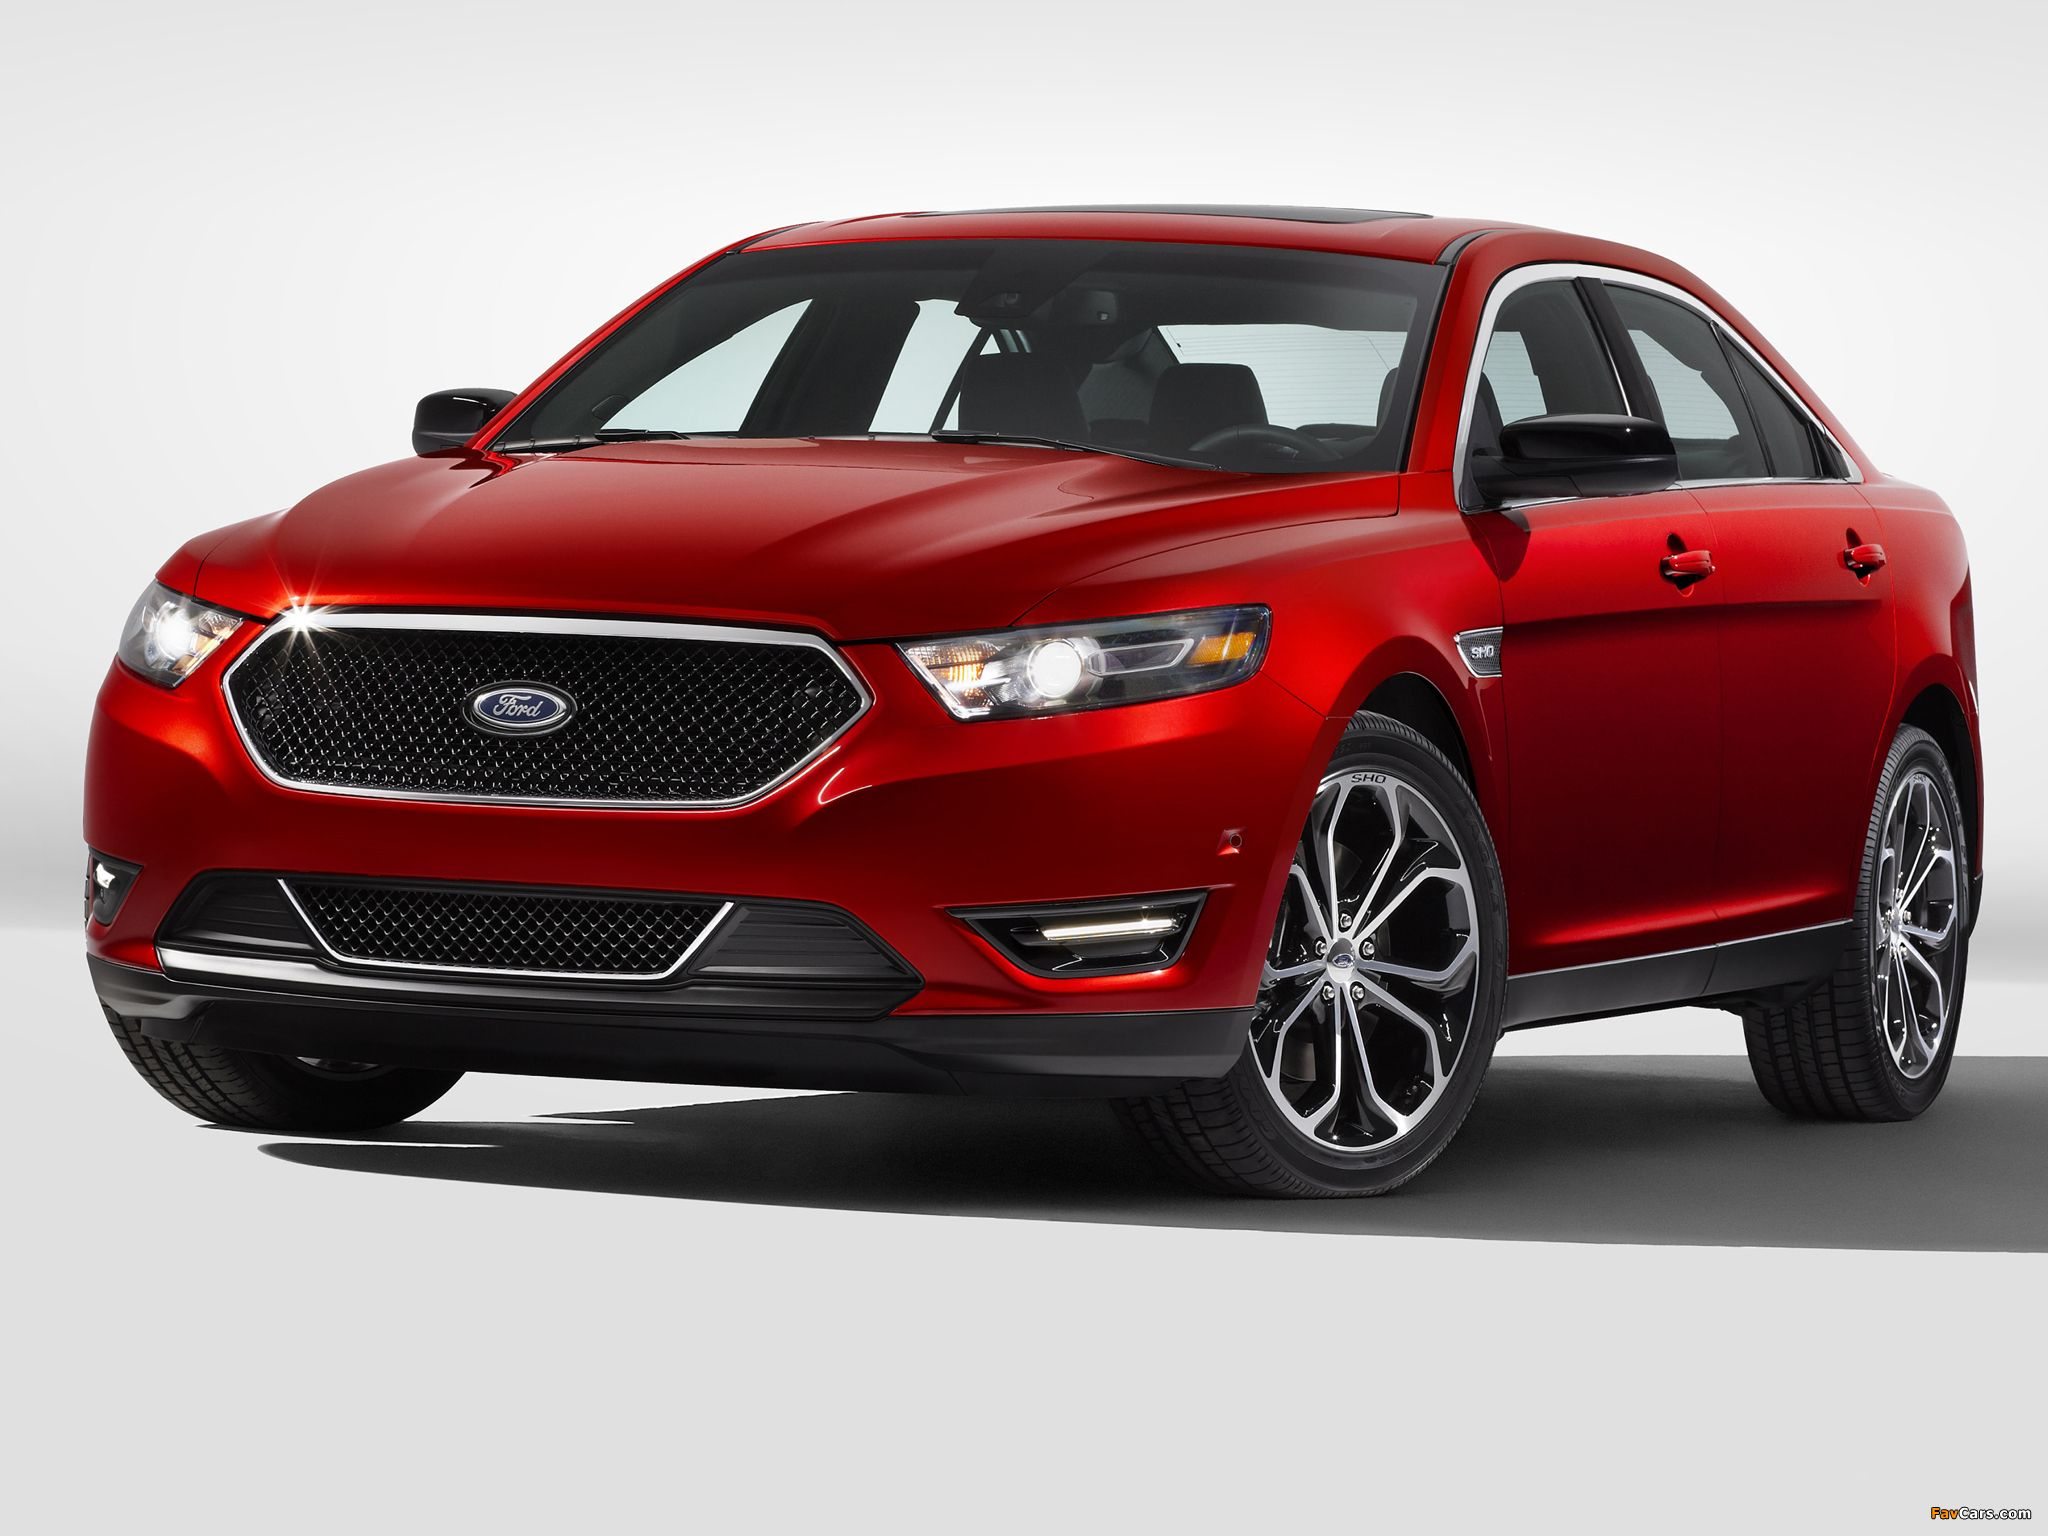 Wallpapers Of Ford Taurus Sho 2011 Ford Taurus Sho Mini Van Honda Odyssey